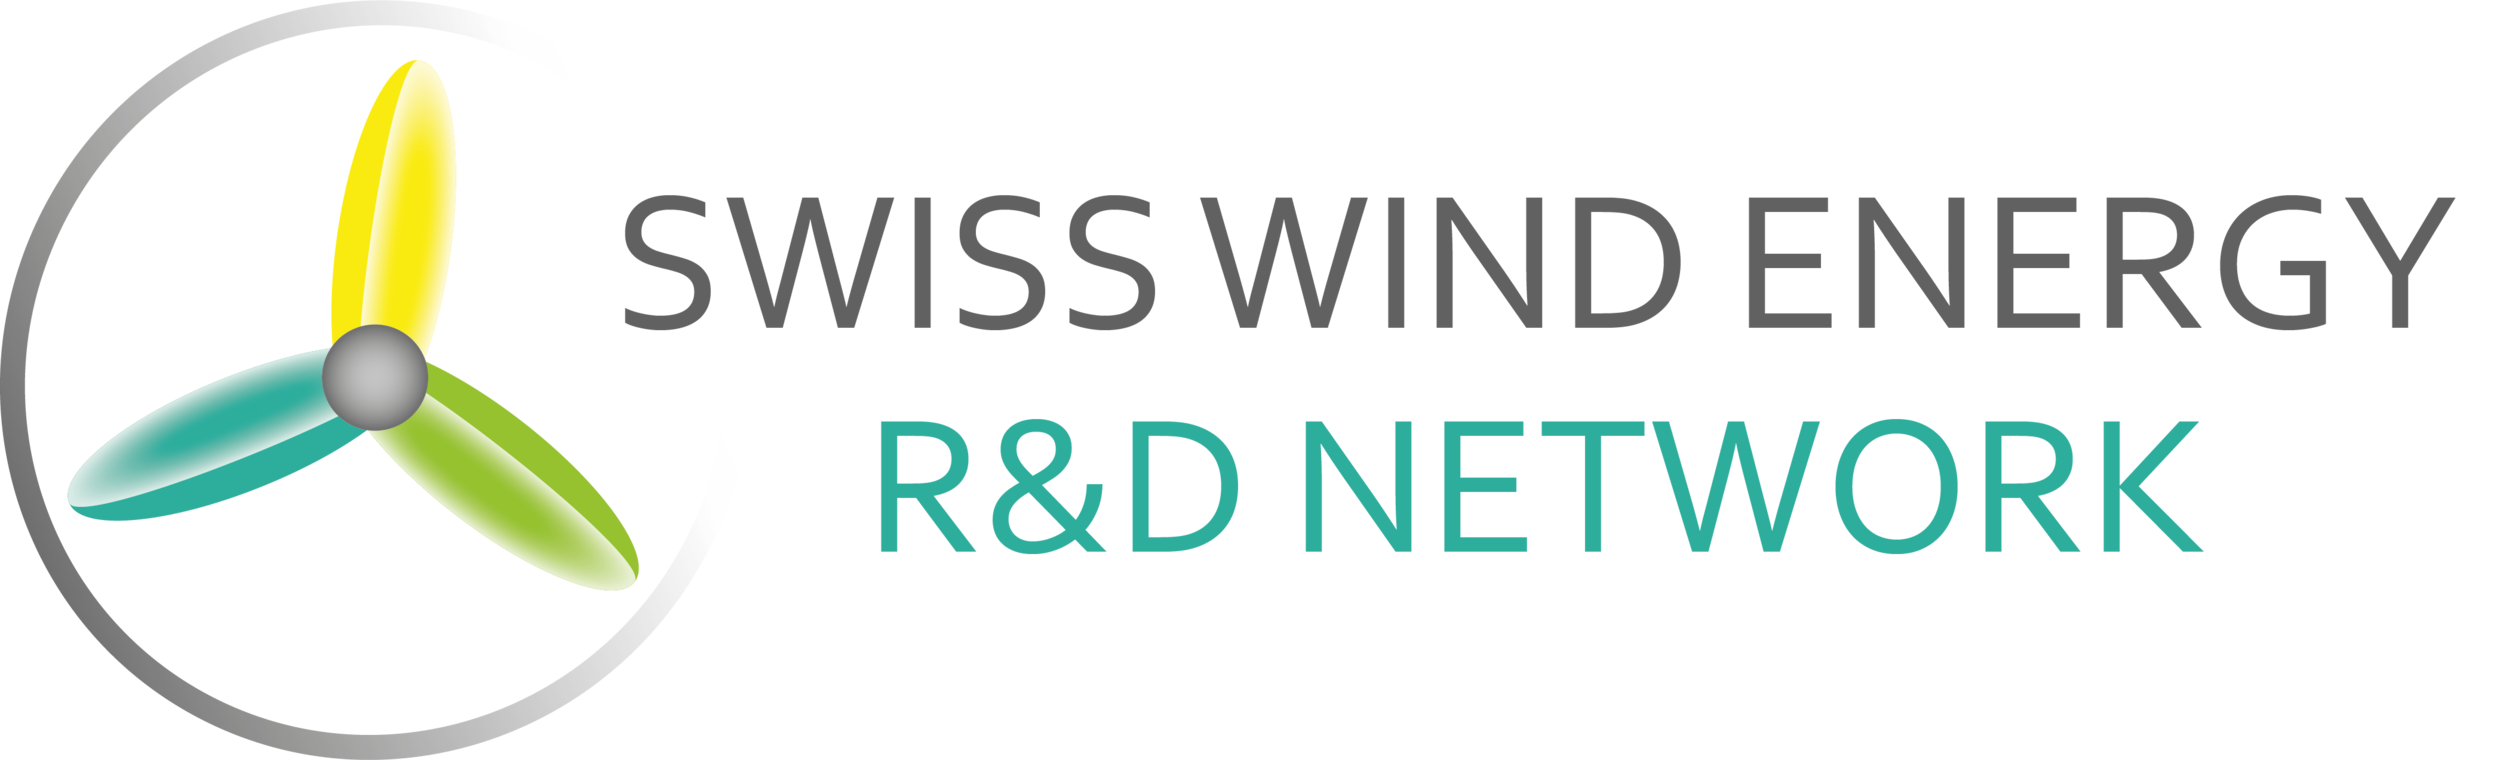 Wind Energy Network finale Version png.png